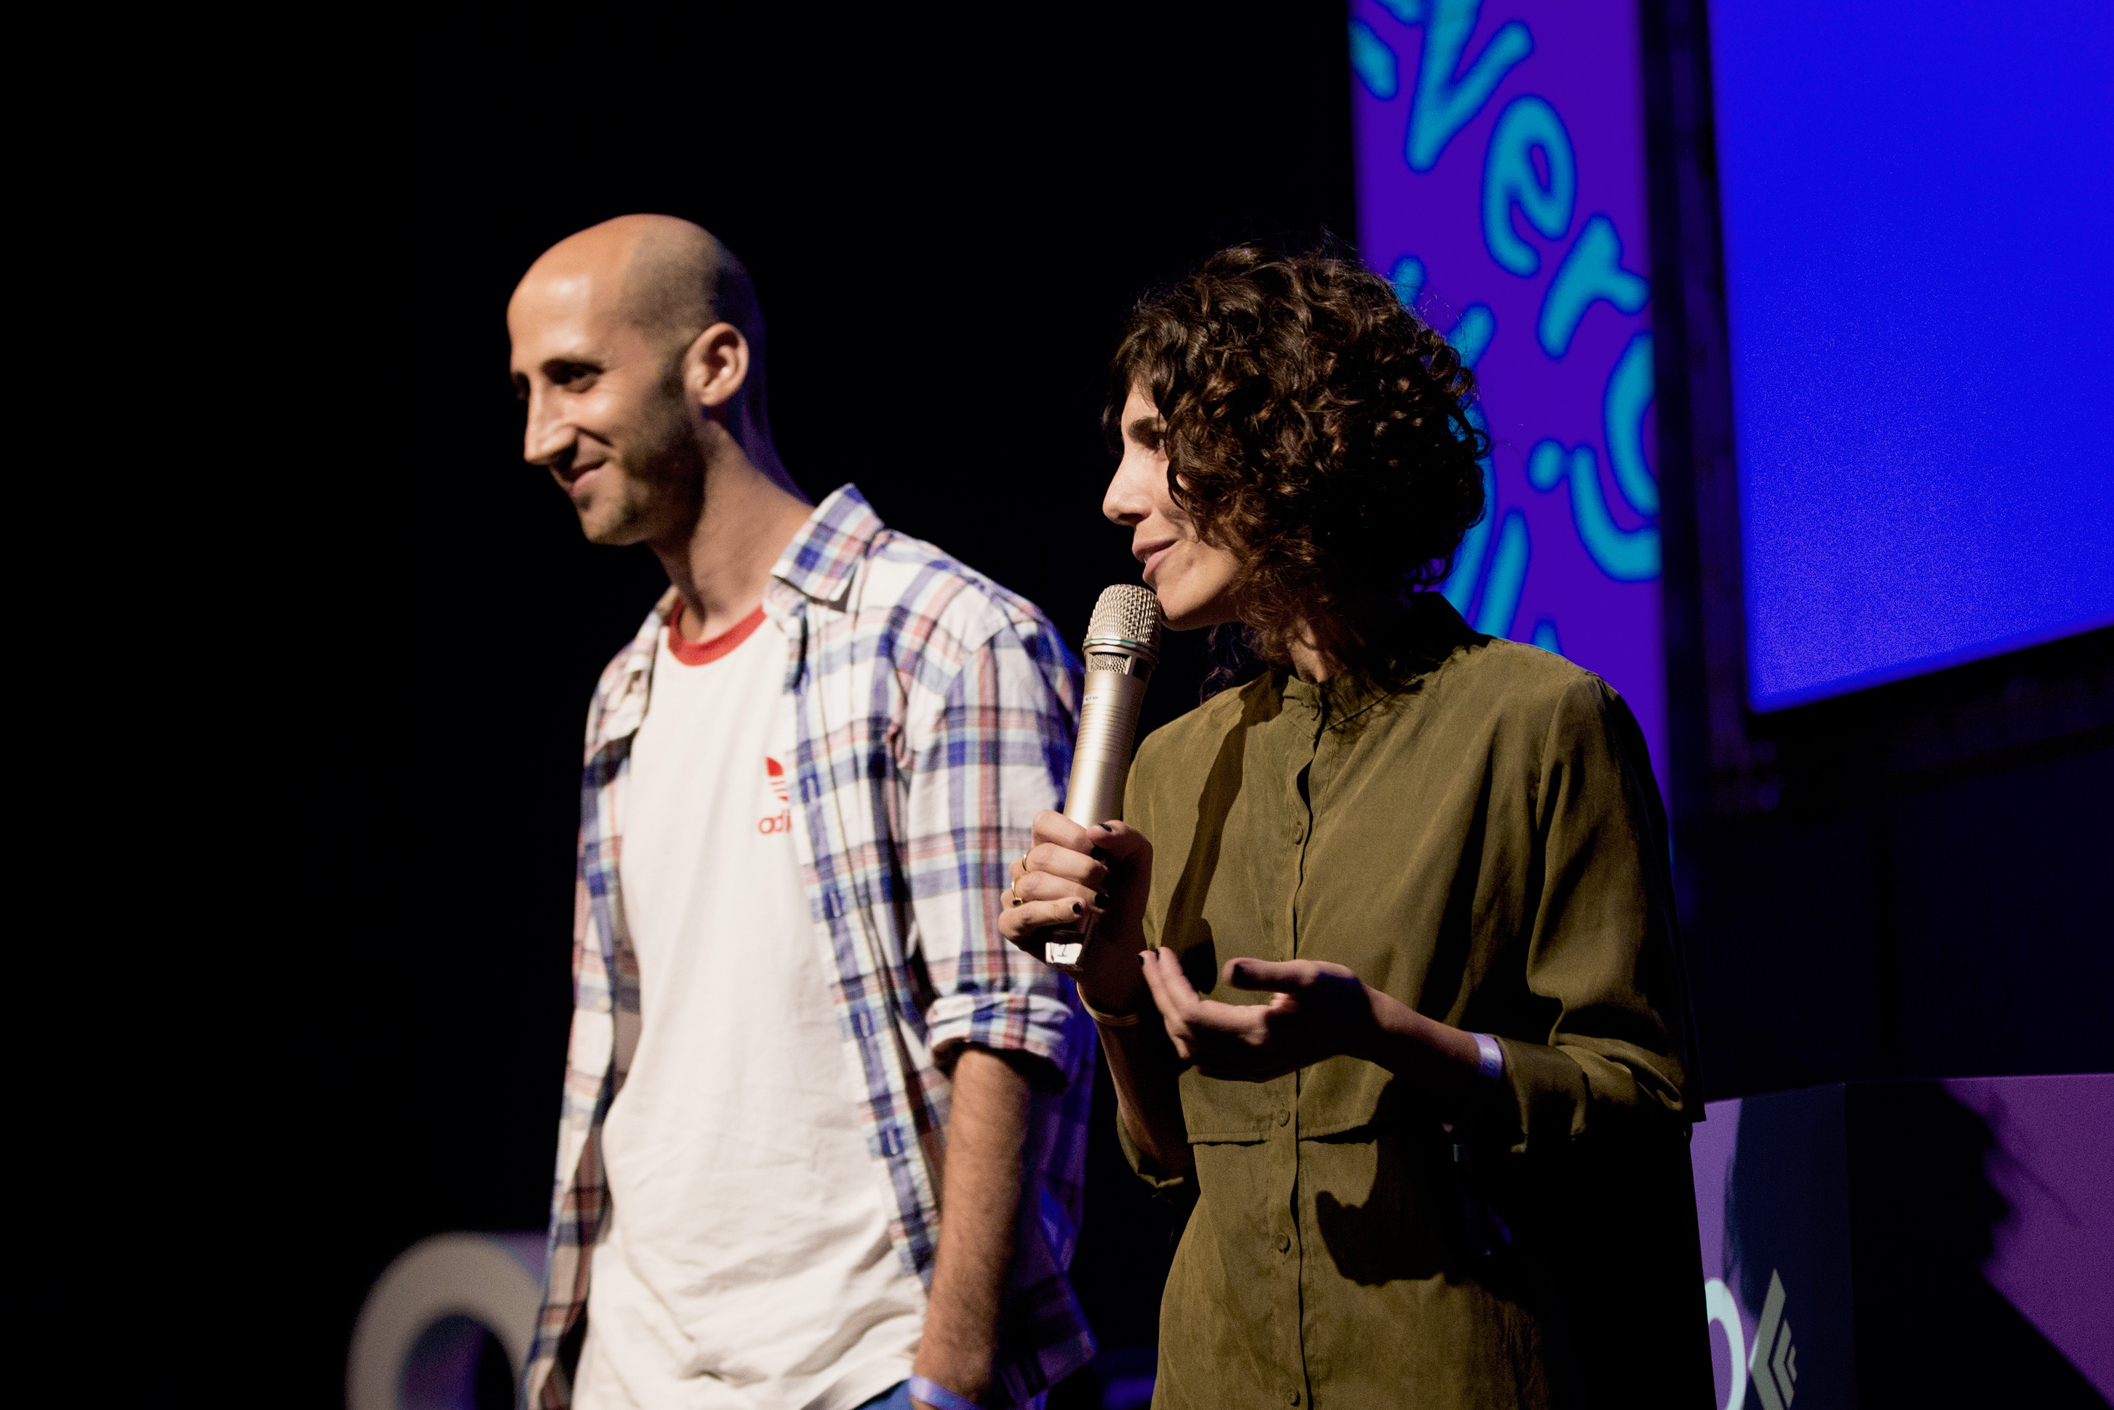 OFFF TLV co-founders Nitsan Rozenberg and Liri Argov